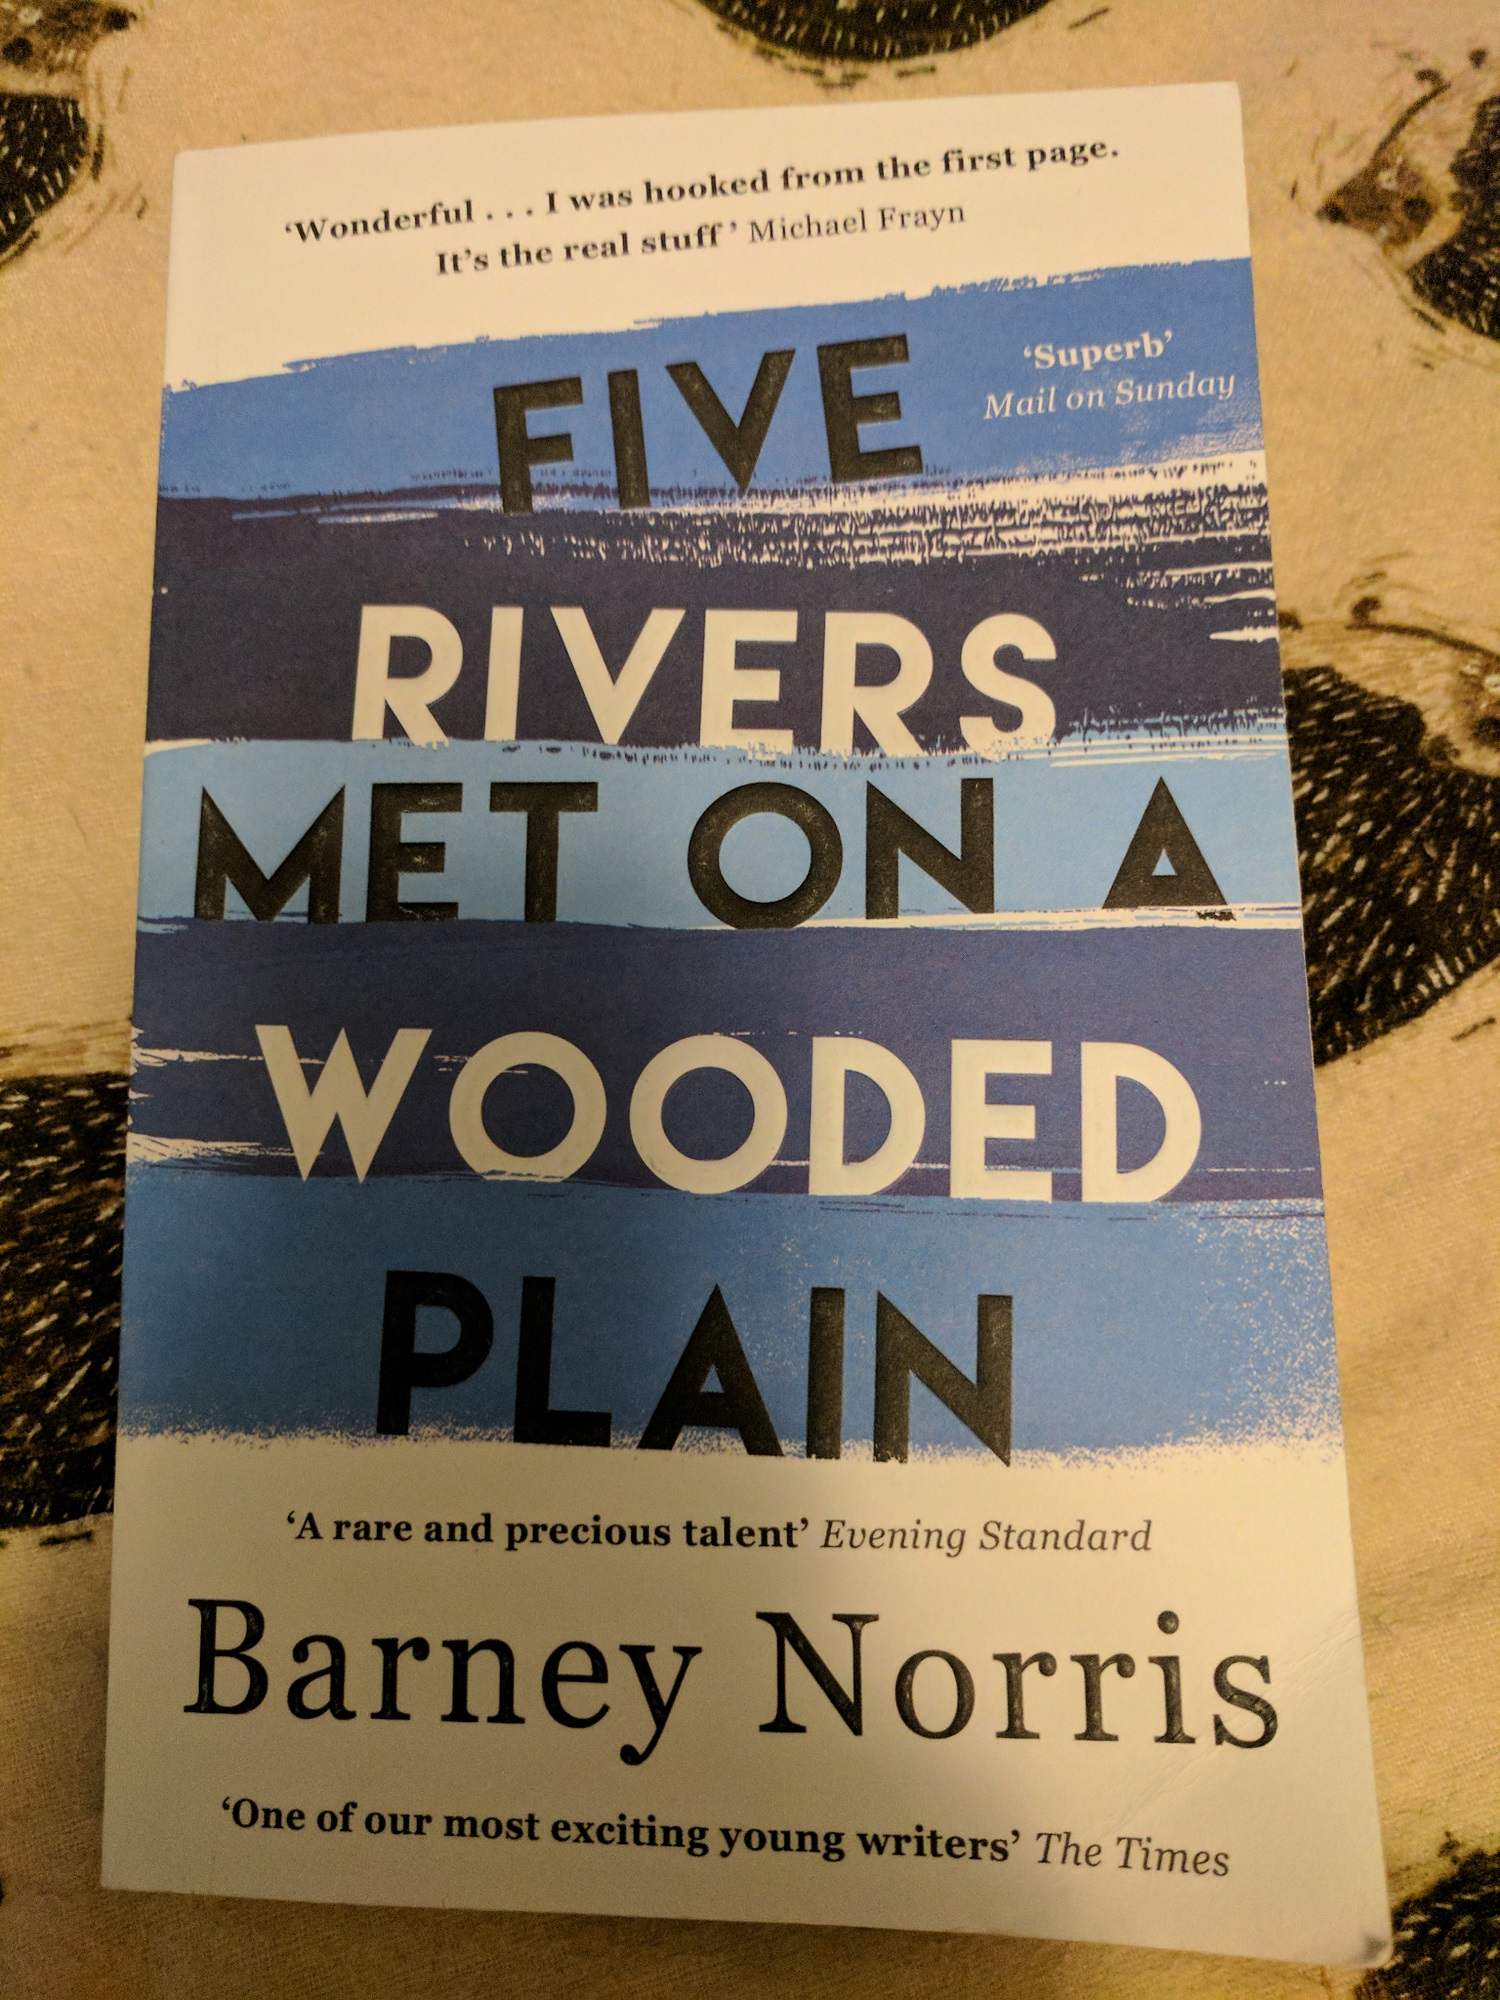 Five Rivers Met on a Wooded Plain